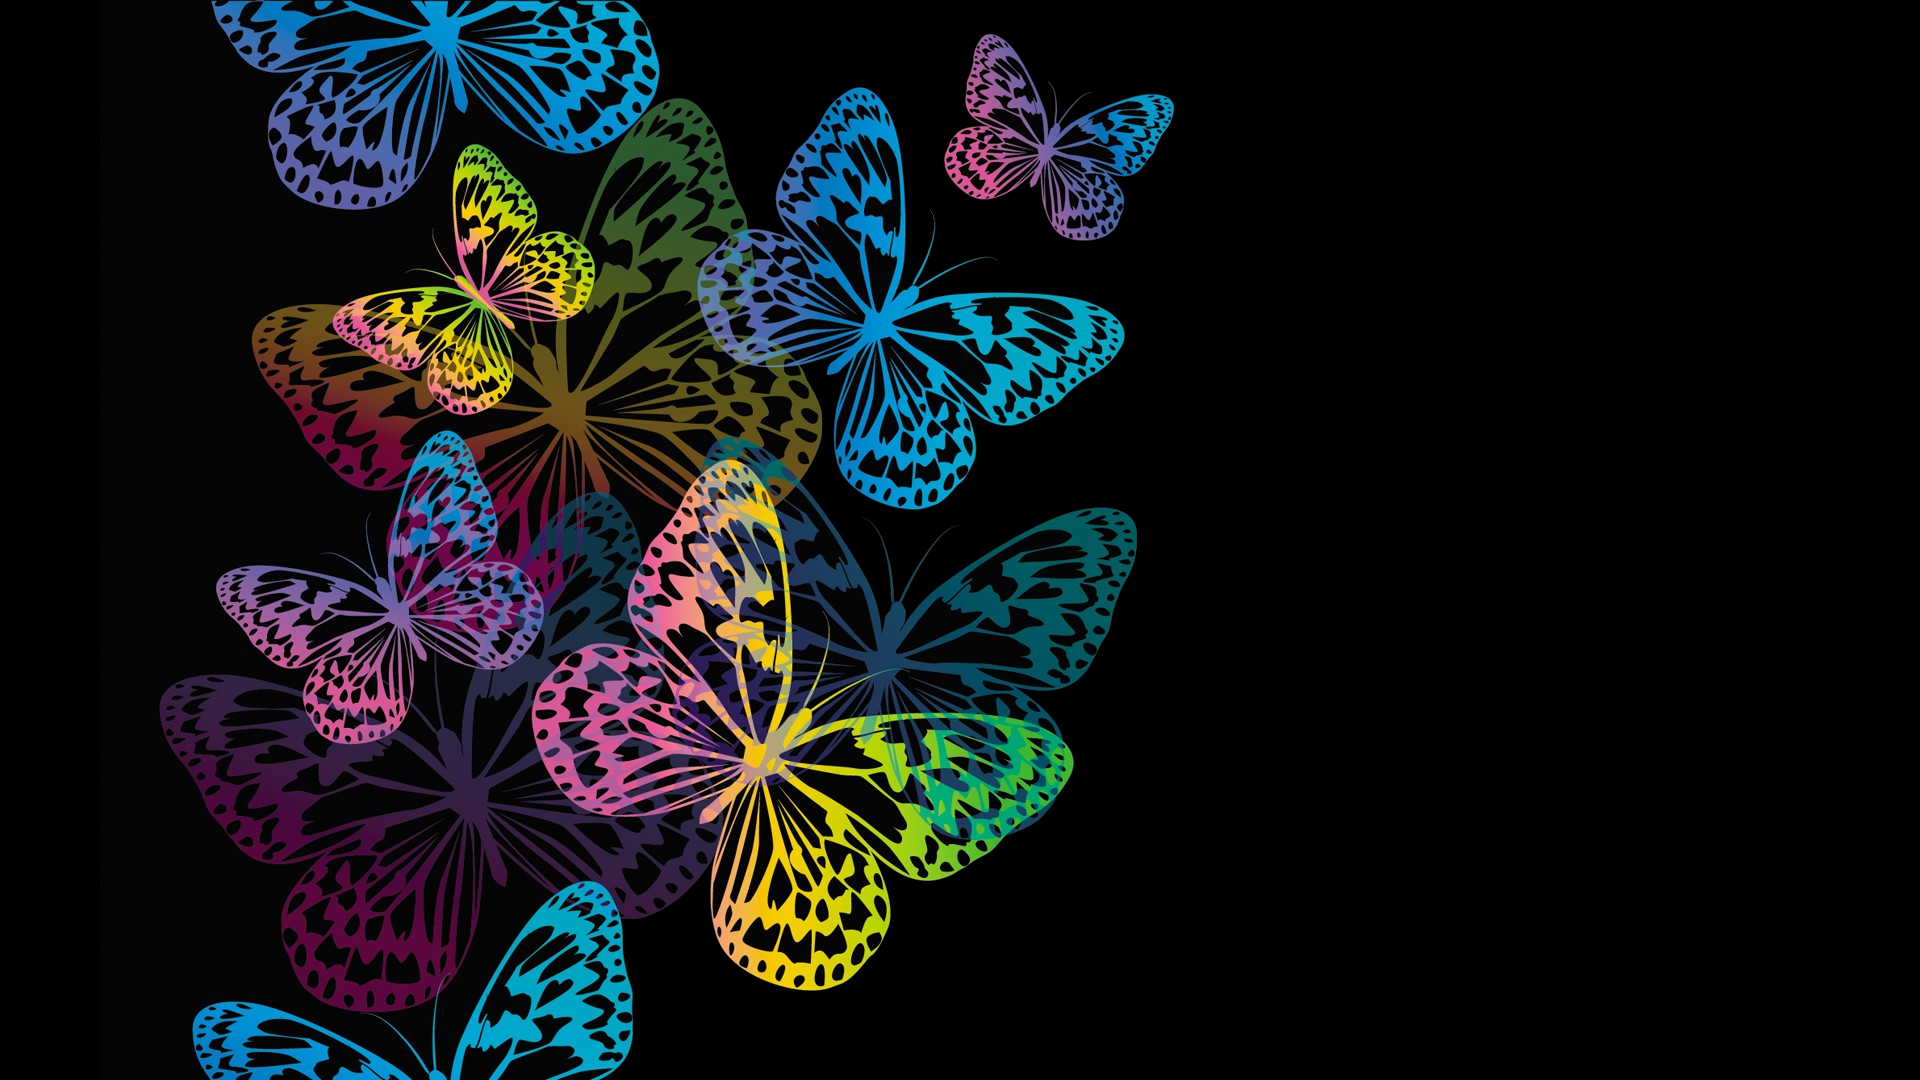 Colorful Butterflies Fondo De Pantalla Hd Fondo De